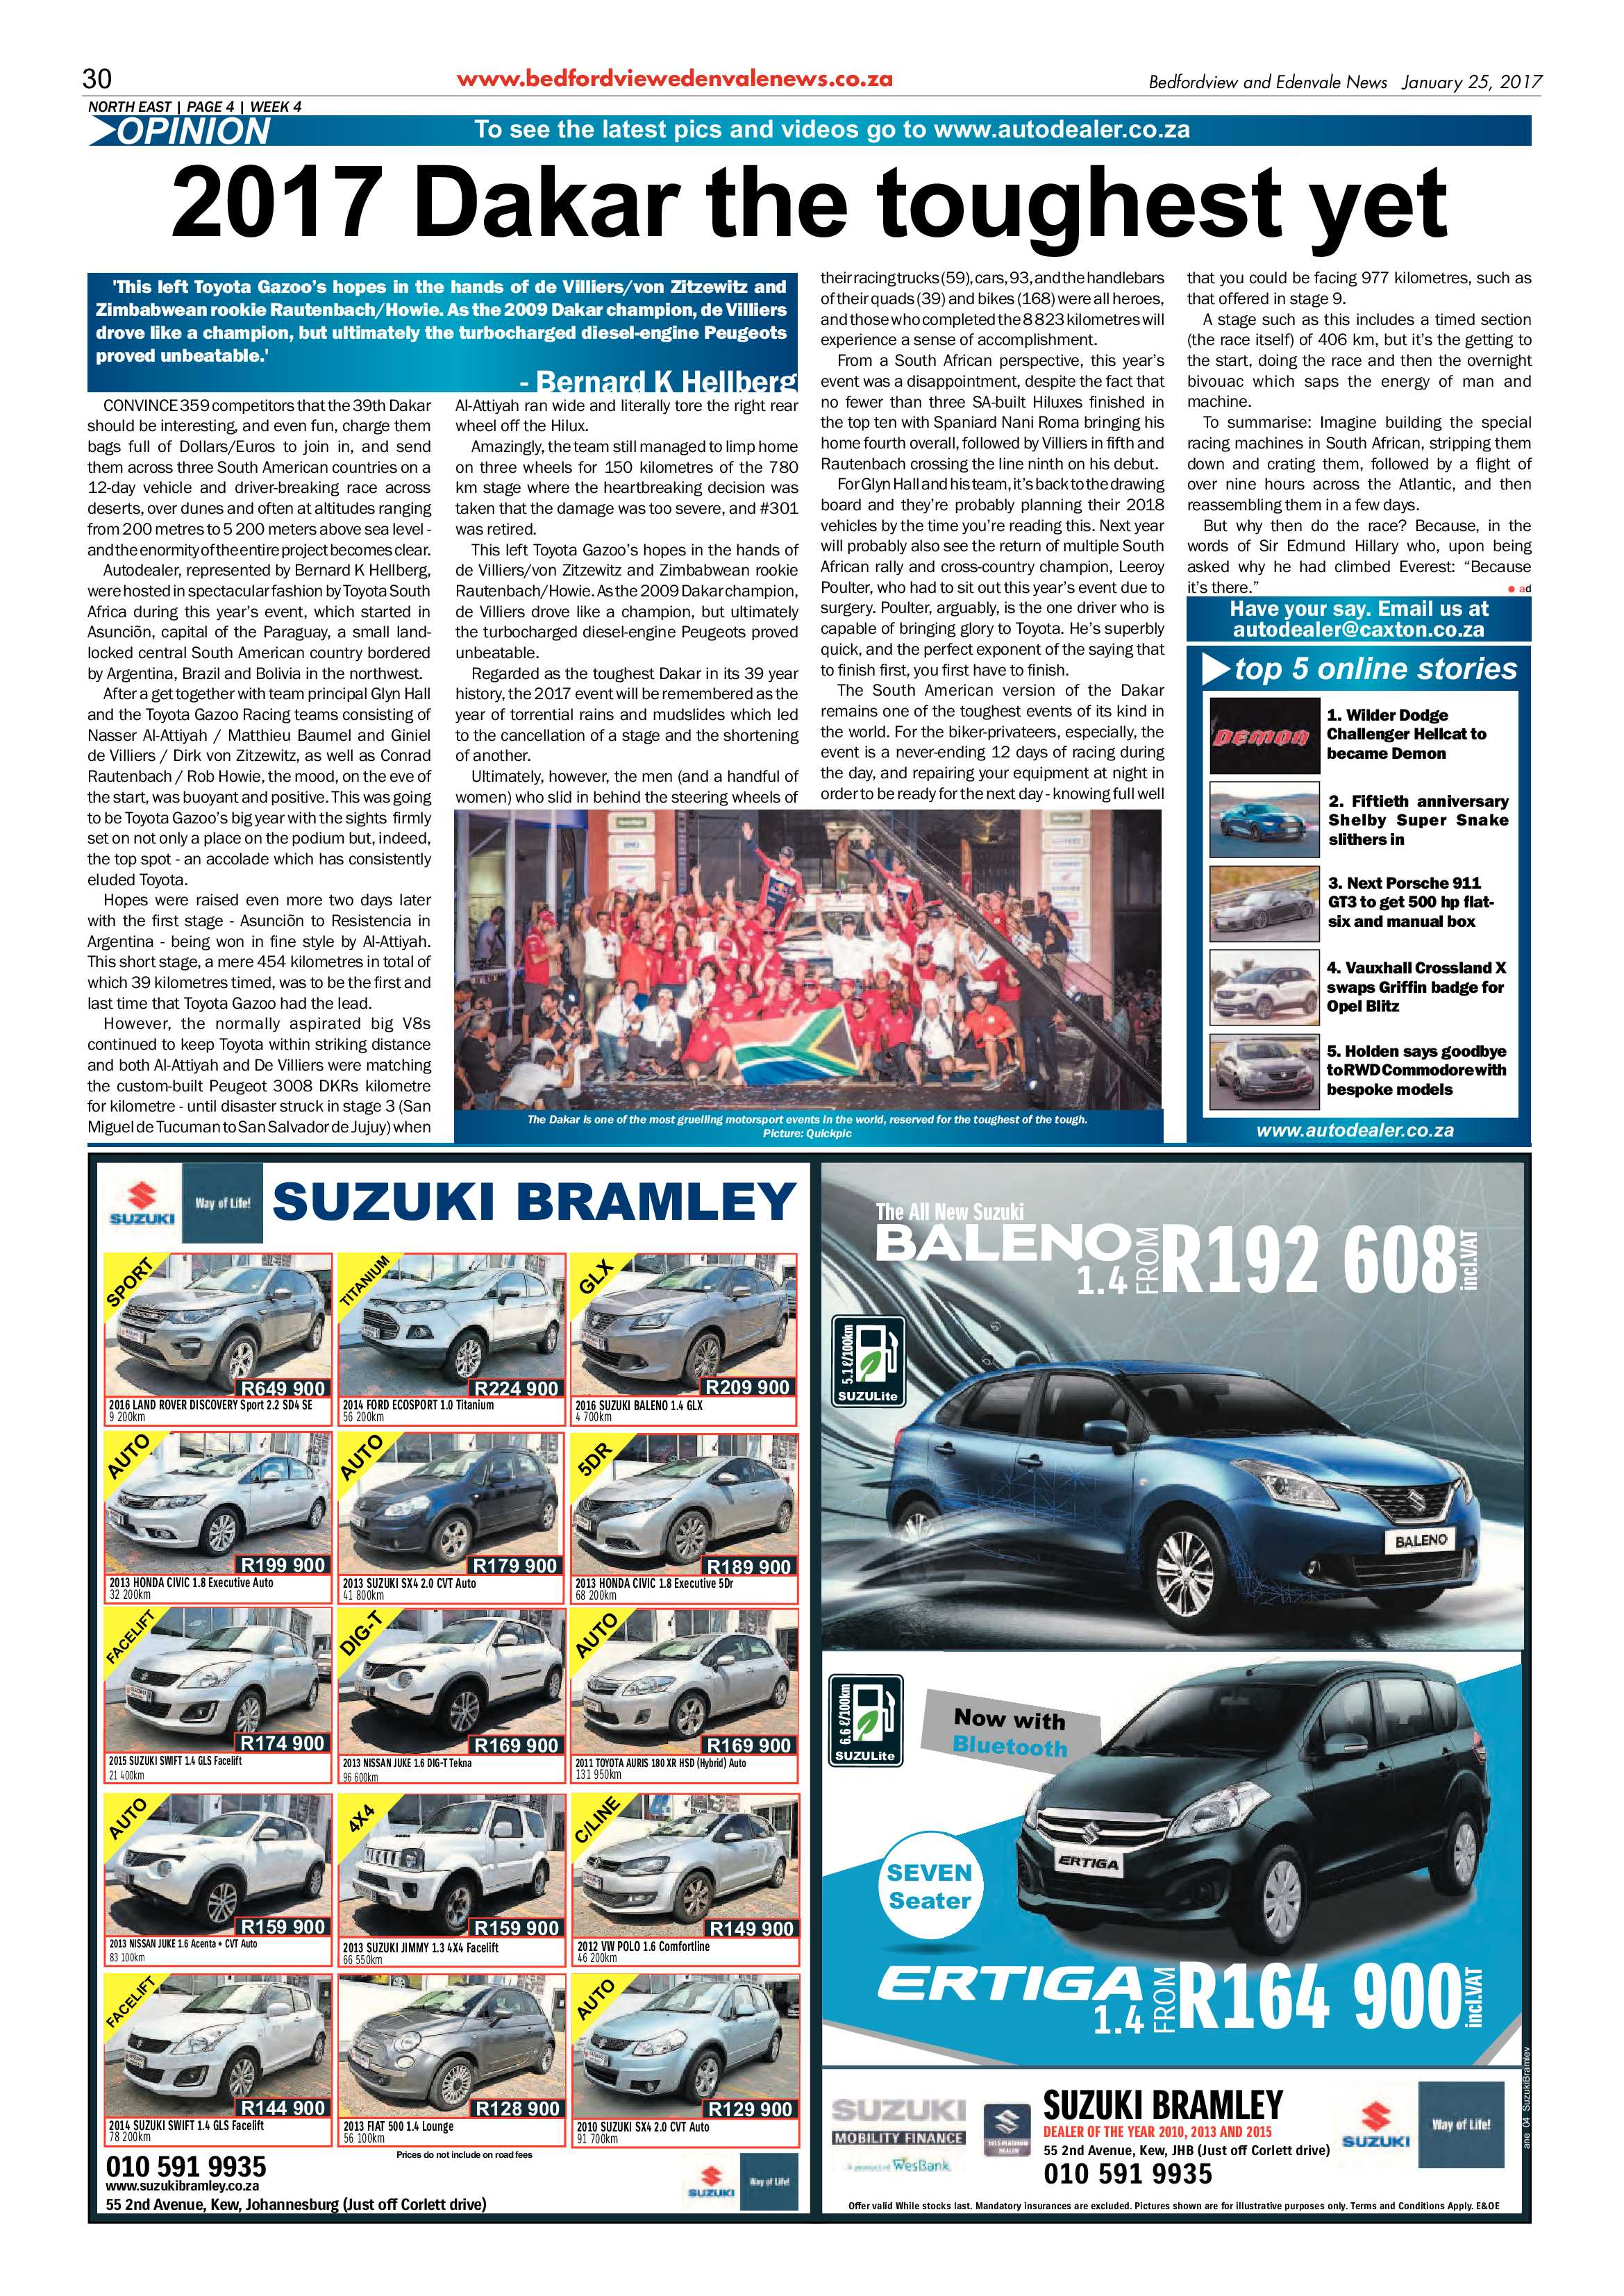 Bedfordview and Edenvale News 25 January 2017 | Bedfordview